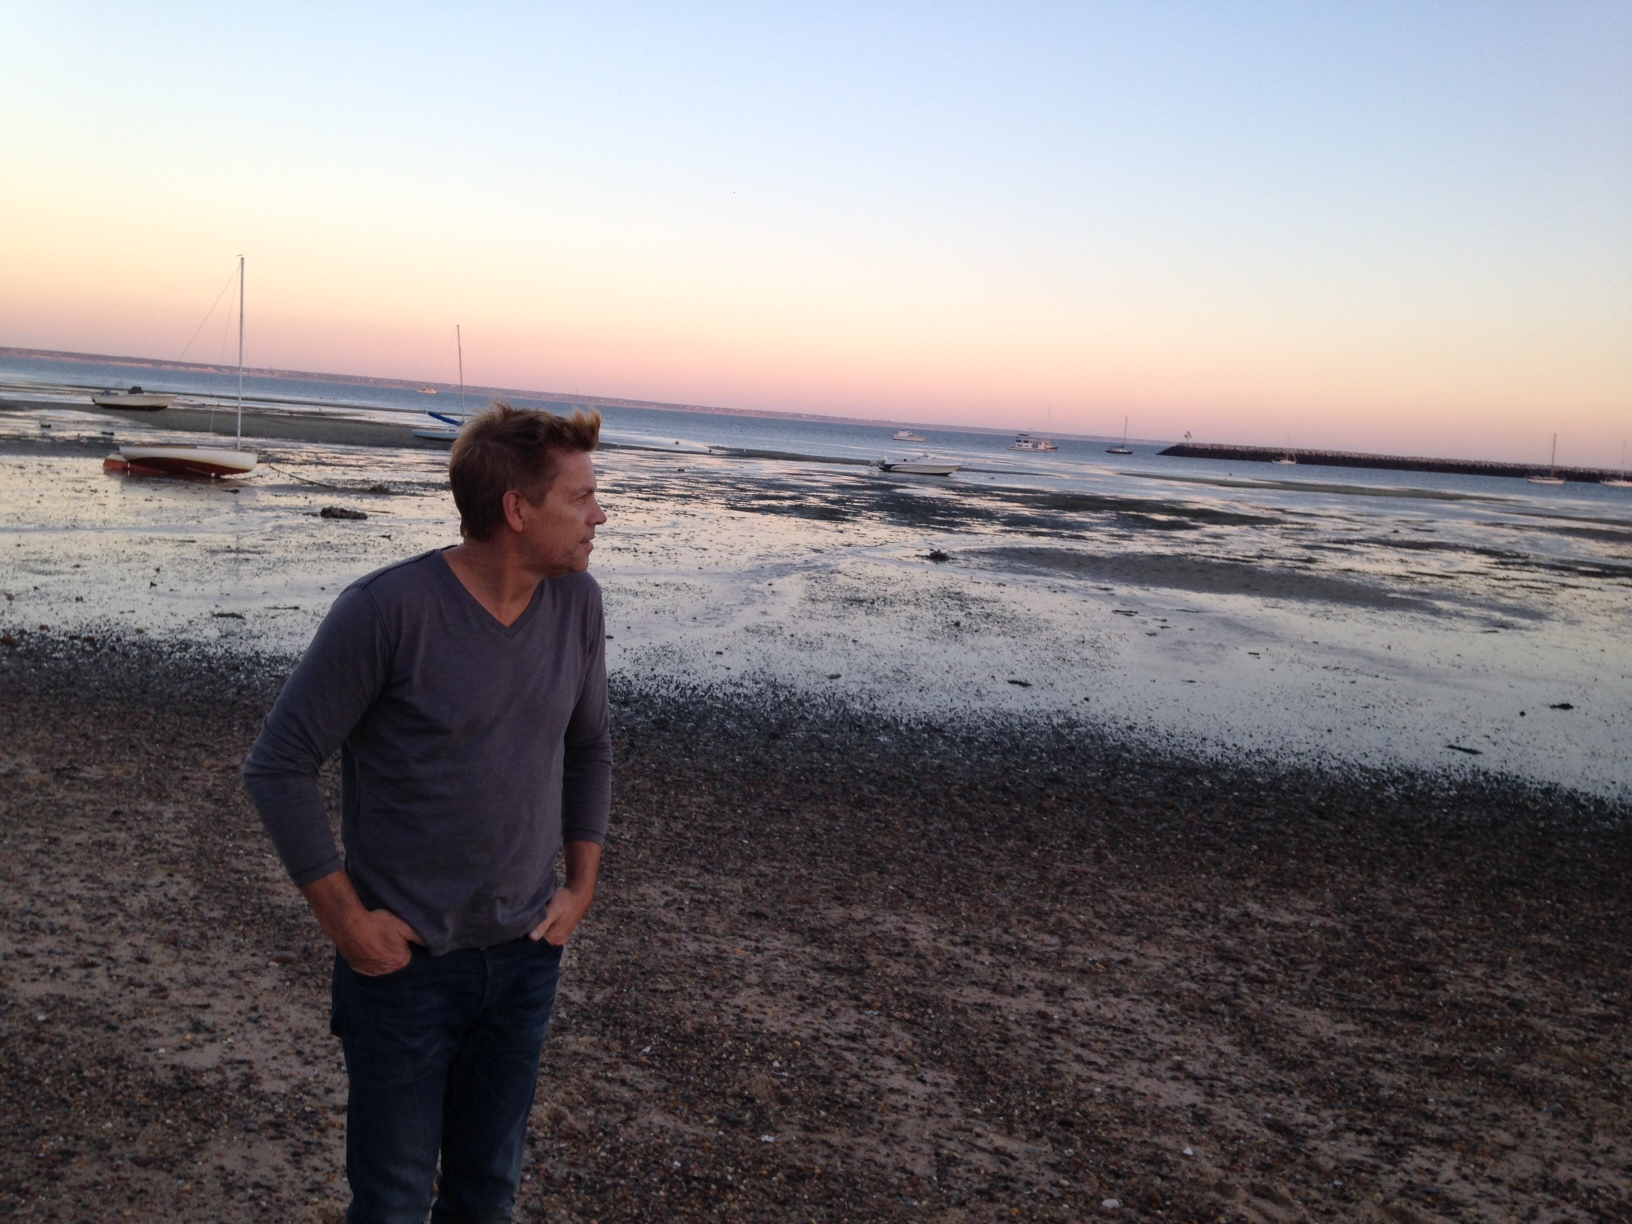 Caption: Peter Donnelly on the beach in Provincetown, Credit: Annabel Lang